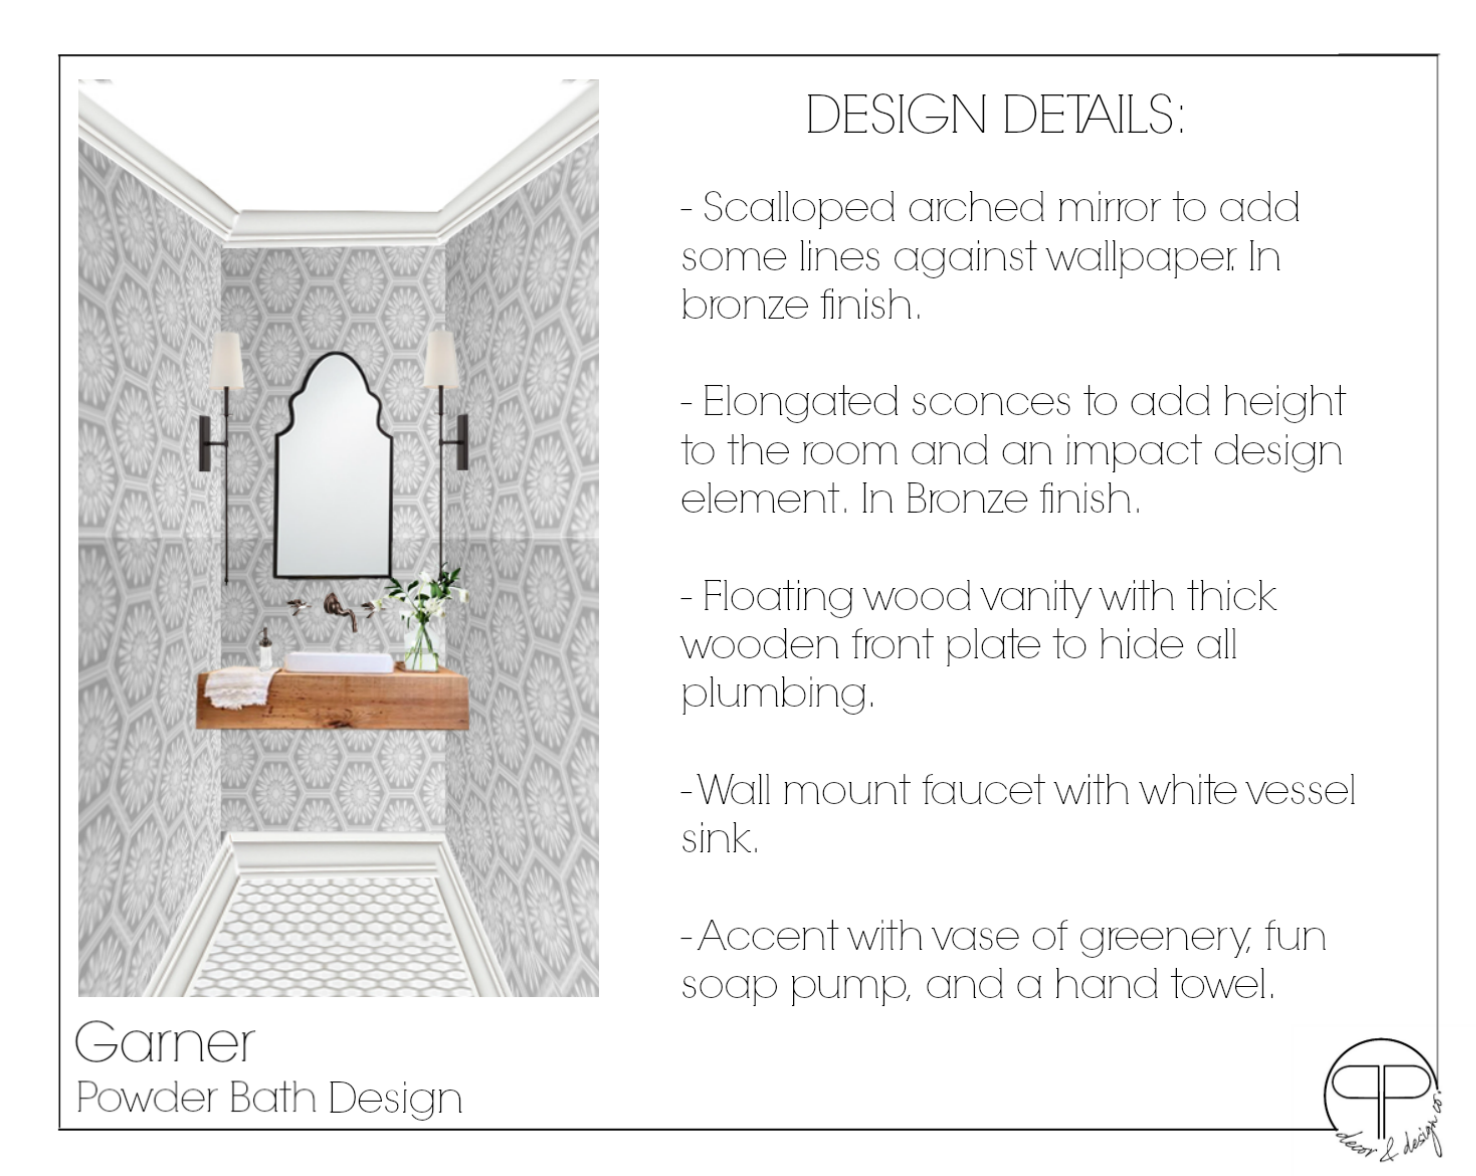 Garner_Powder_Bath_Design_Details.png